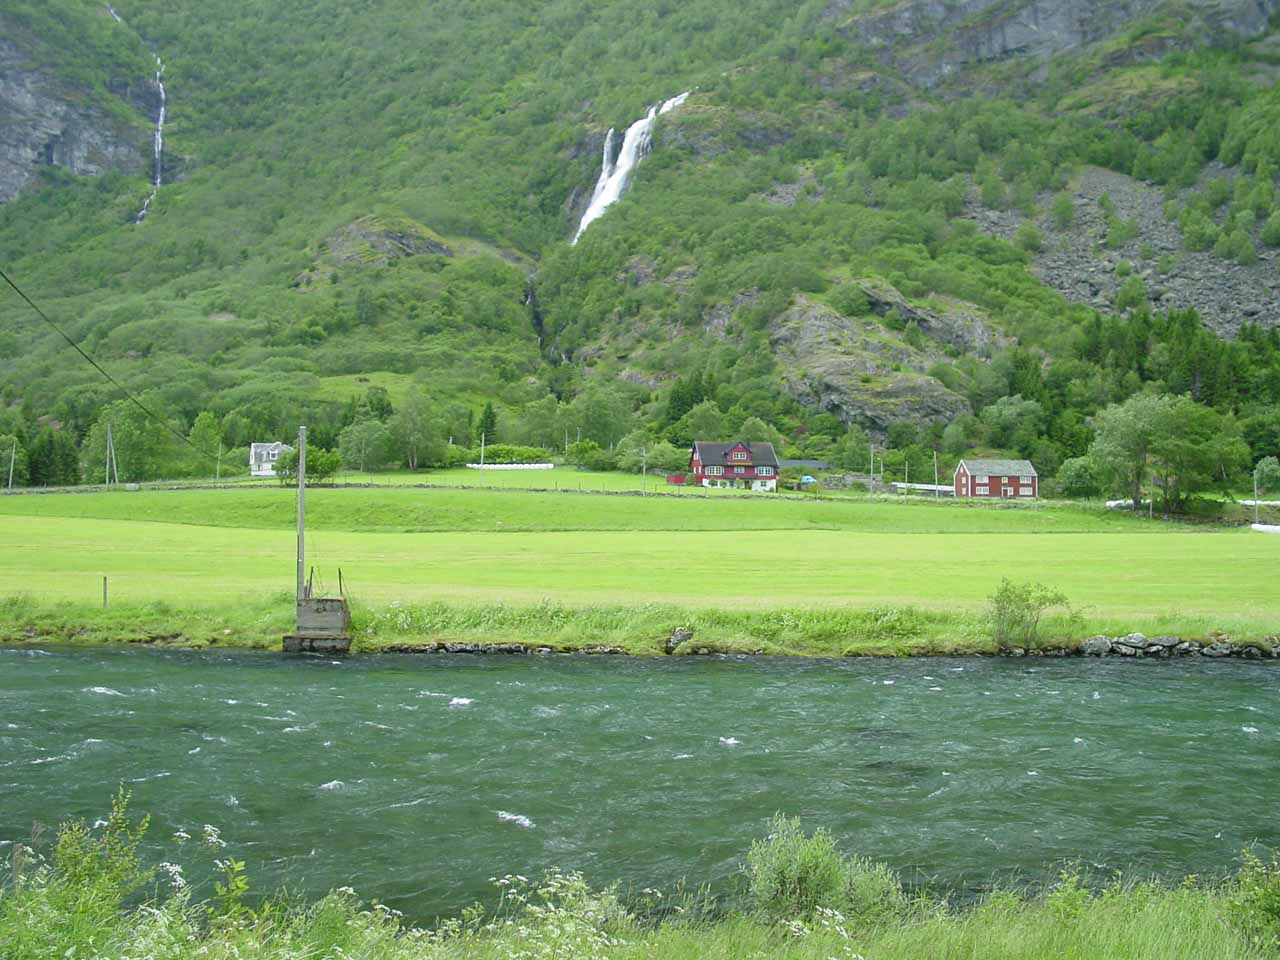 Checking out Brekkefossen from a distance as we were self-driving into Flamsdalen